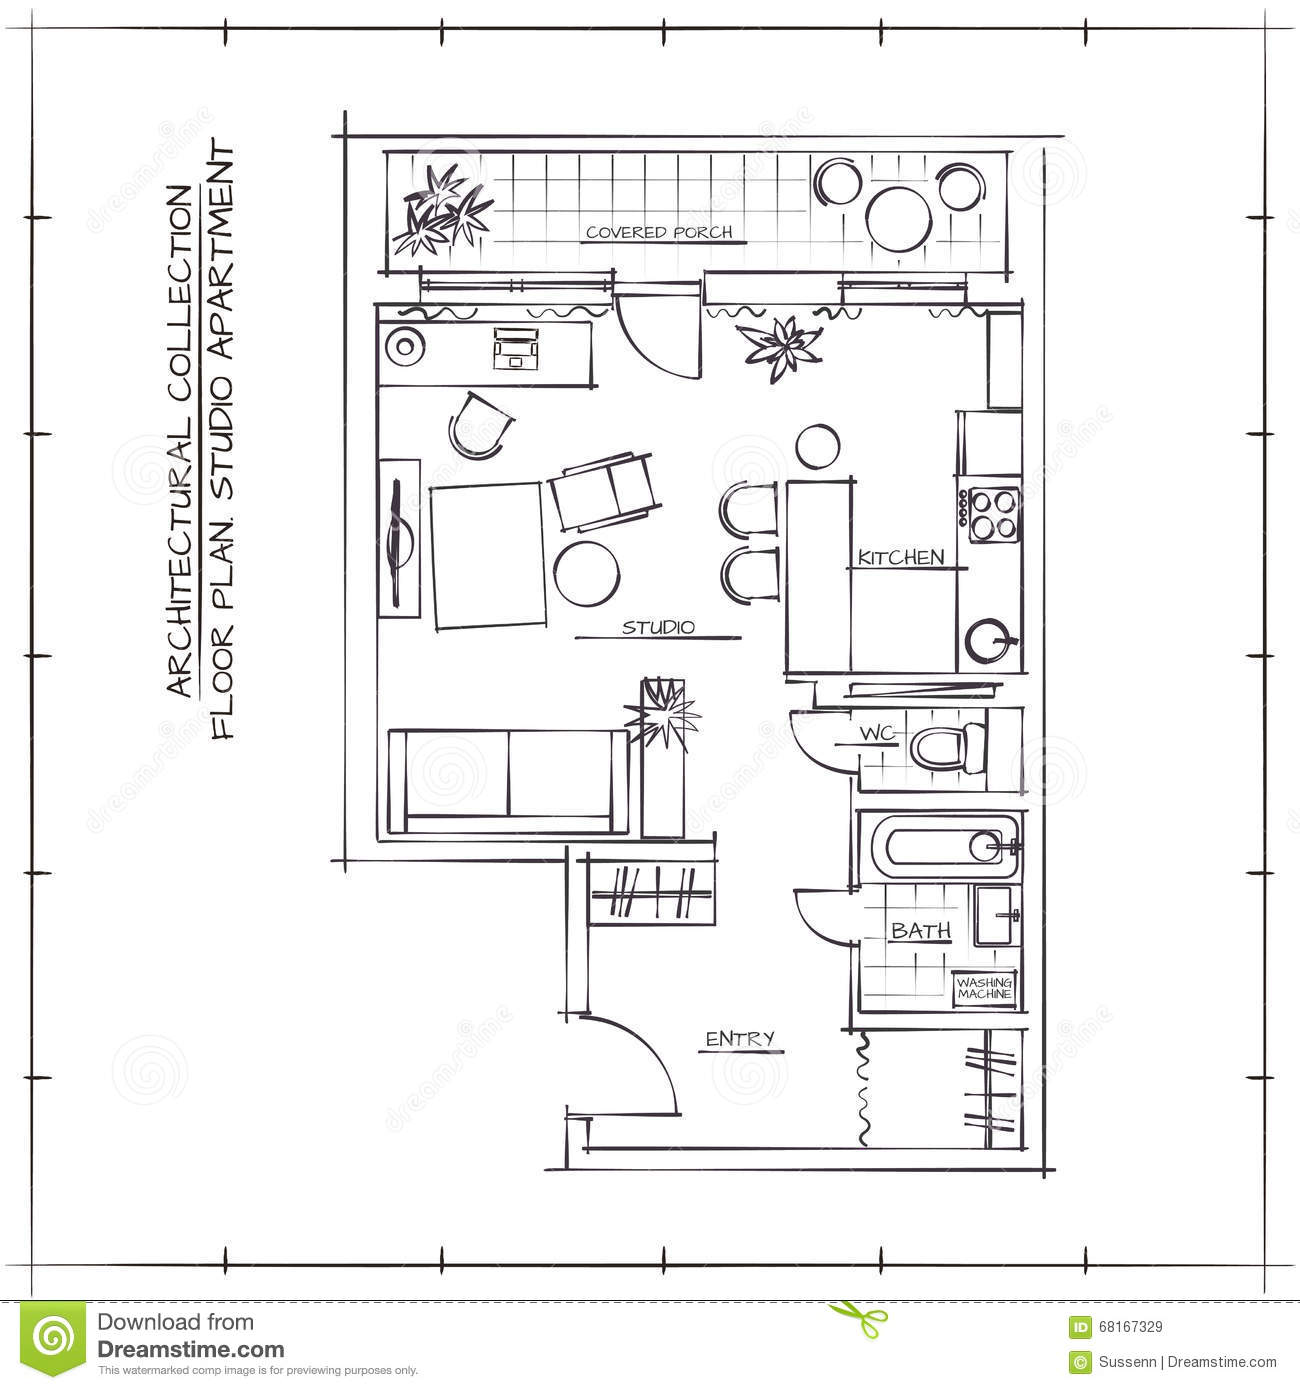 Architectural floor plan stock vector image 68167329 for Architectural design floor plans